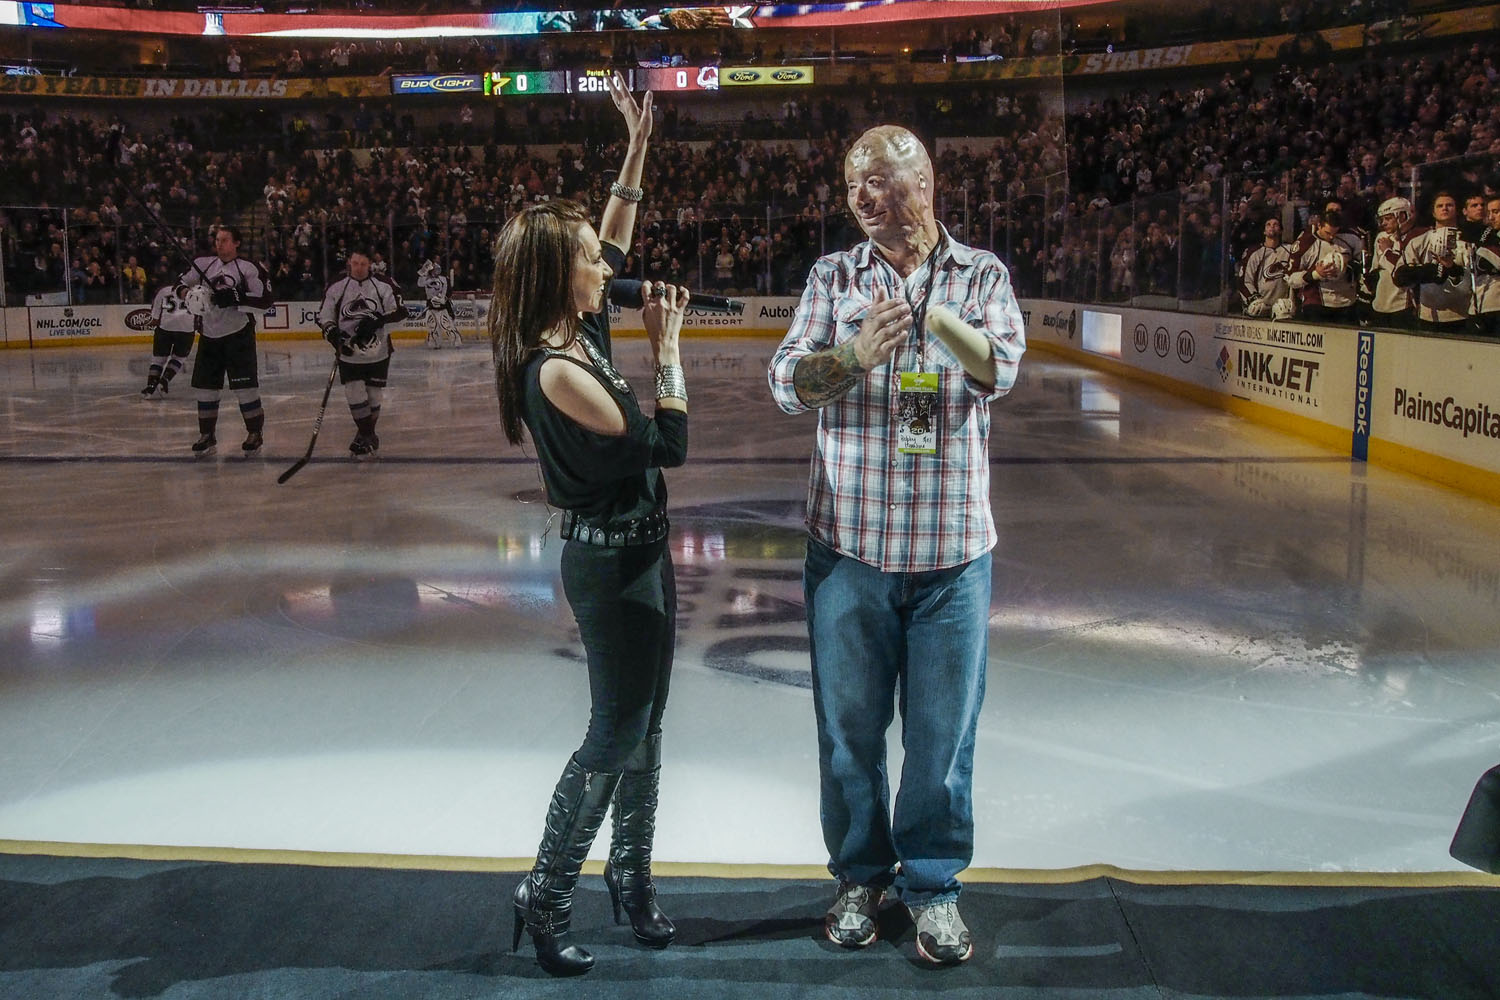 Bobby on ice with singer Celine Ray after the national anthem. He was the center of Military Appreciation night for the Dallas Stars NHL team. 2013.